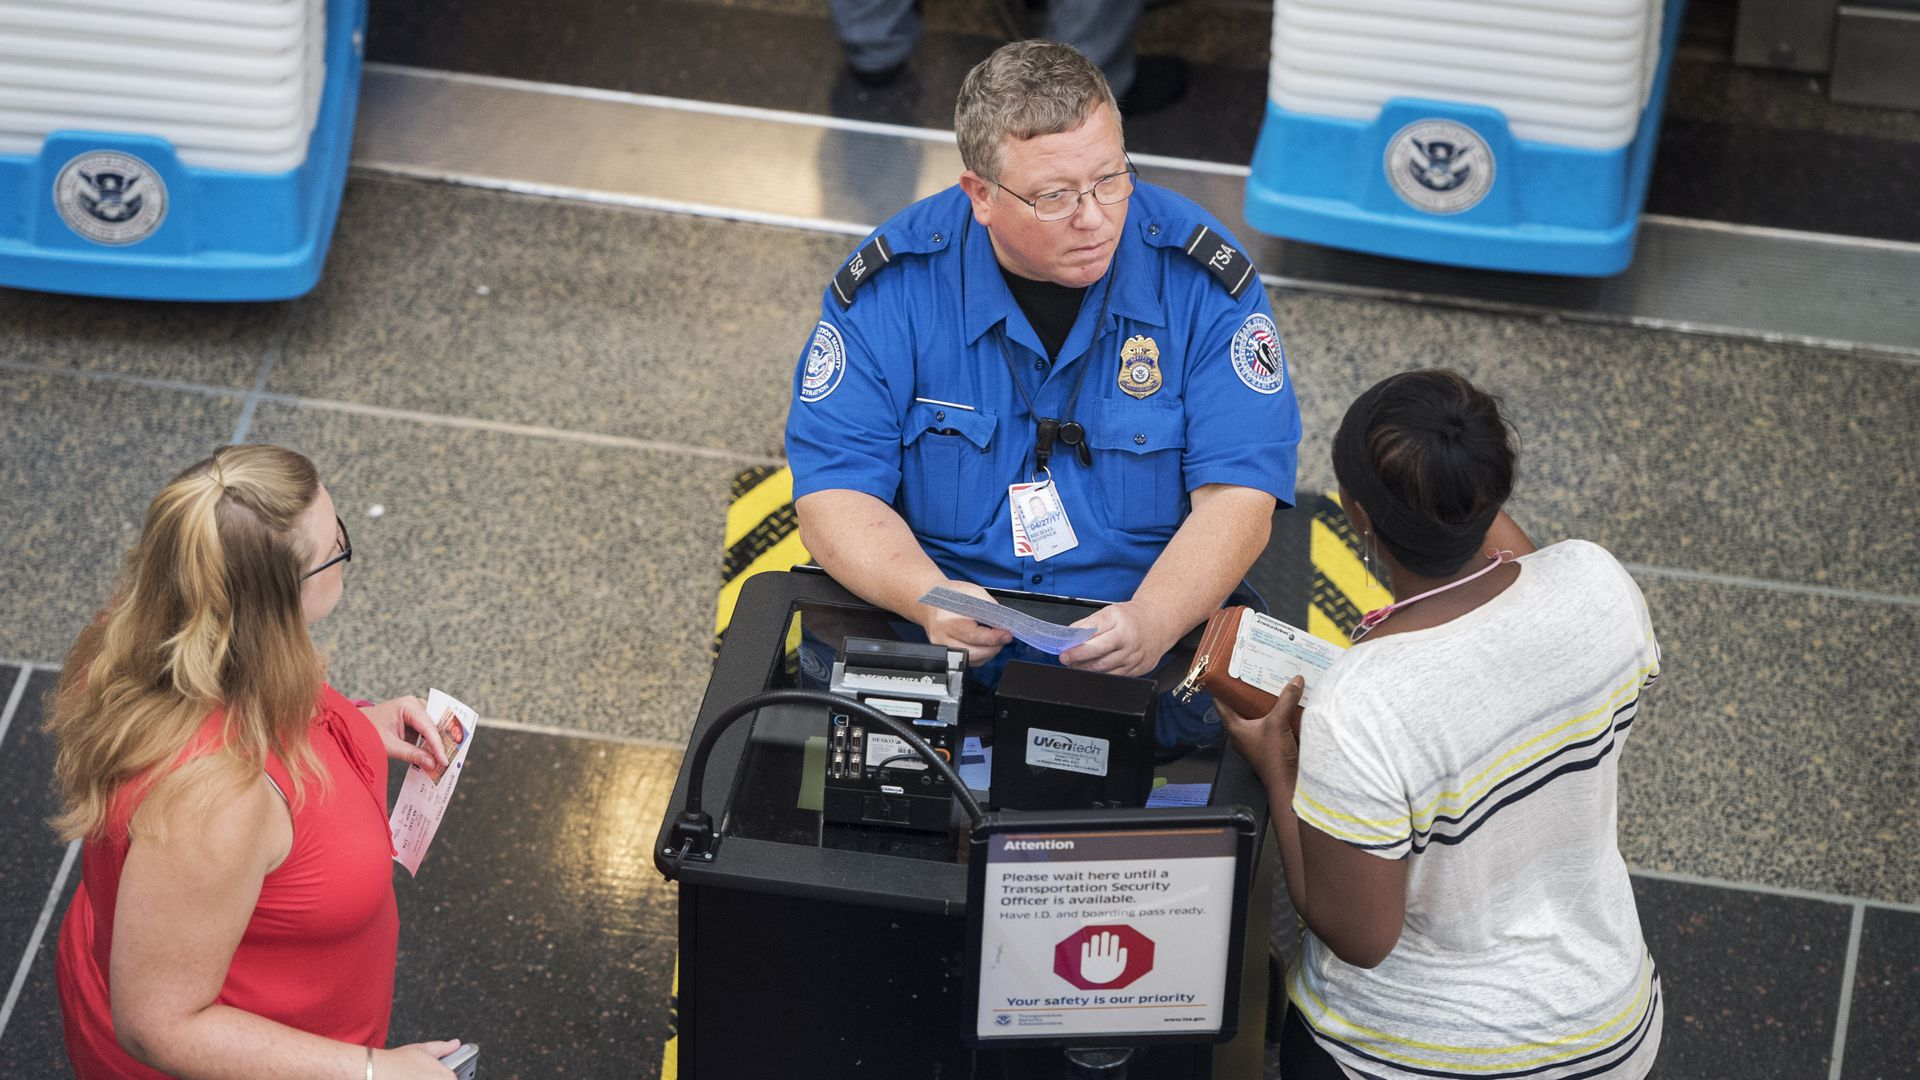 In this image, a TSA officer sits and speaks to a passenger in a white shirt.